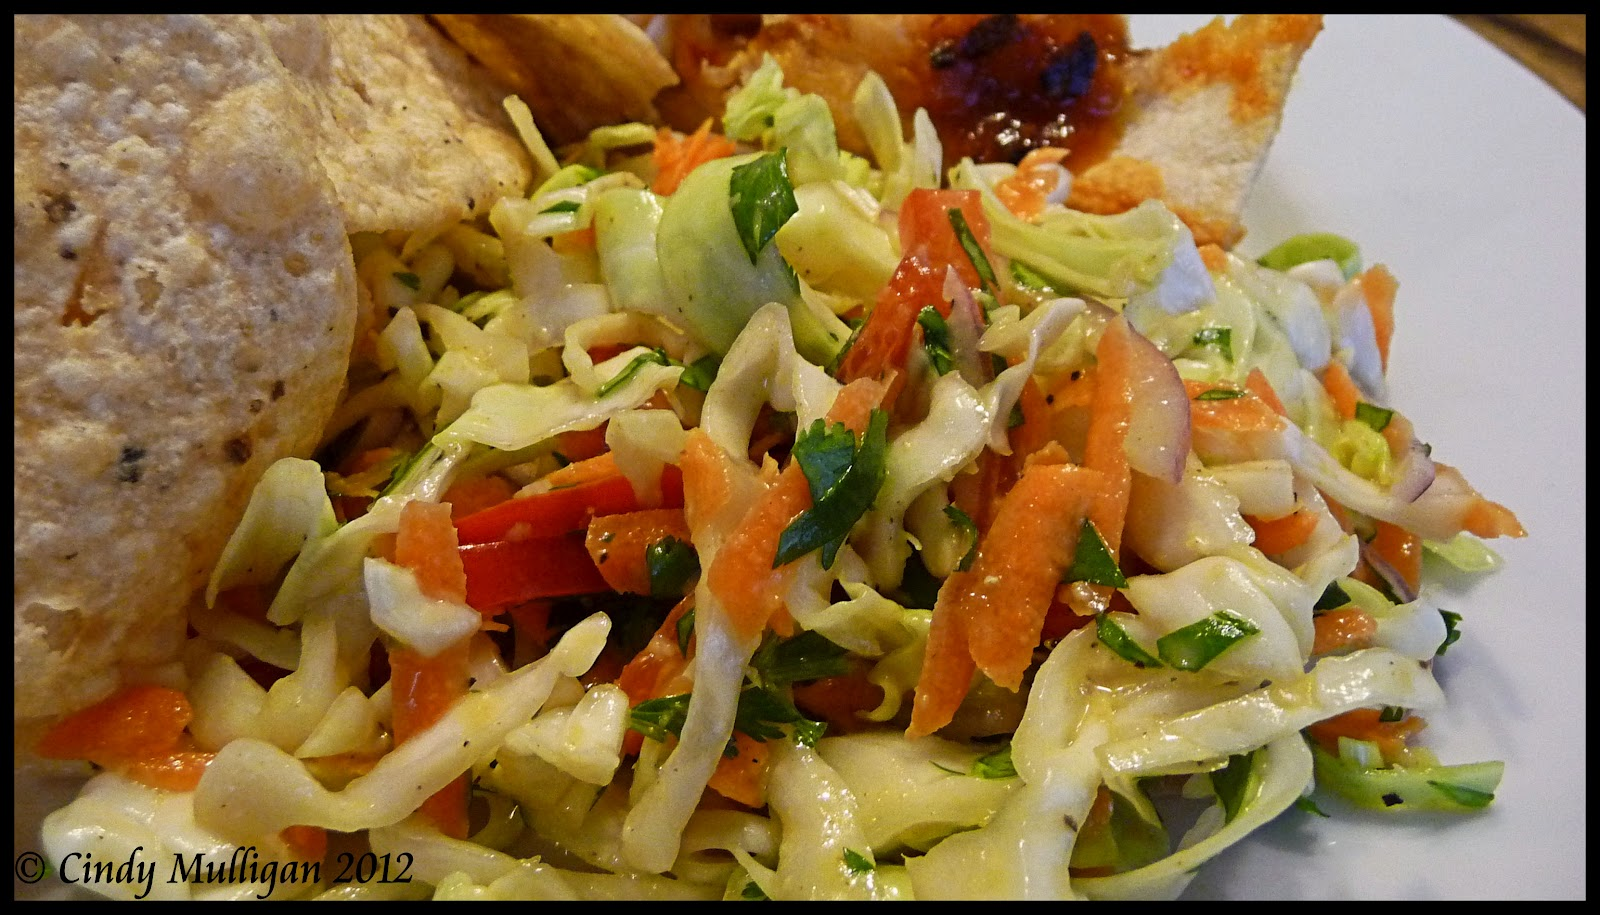 Gumbo Ya Ya: Spicy Coleslaw with Cumin Lime Dressing